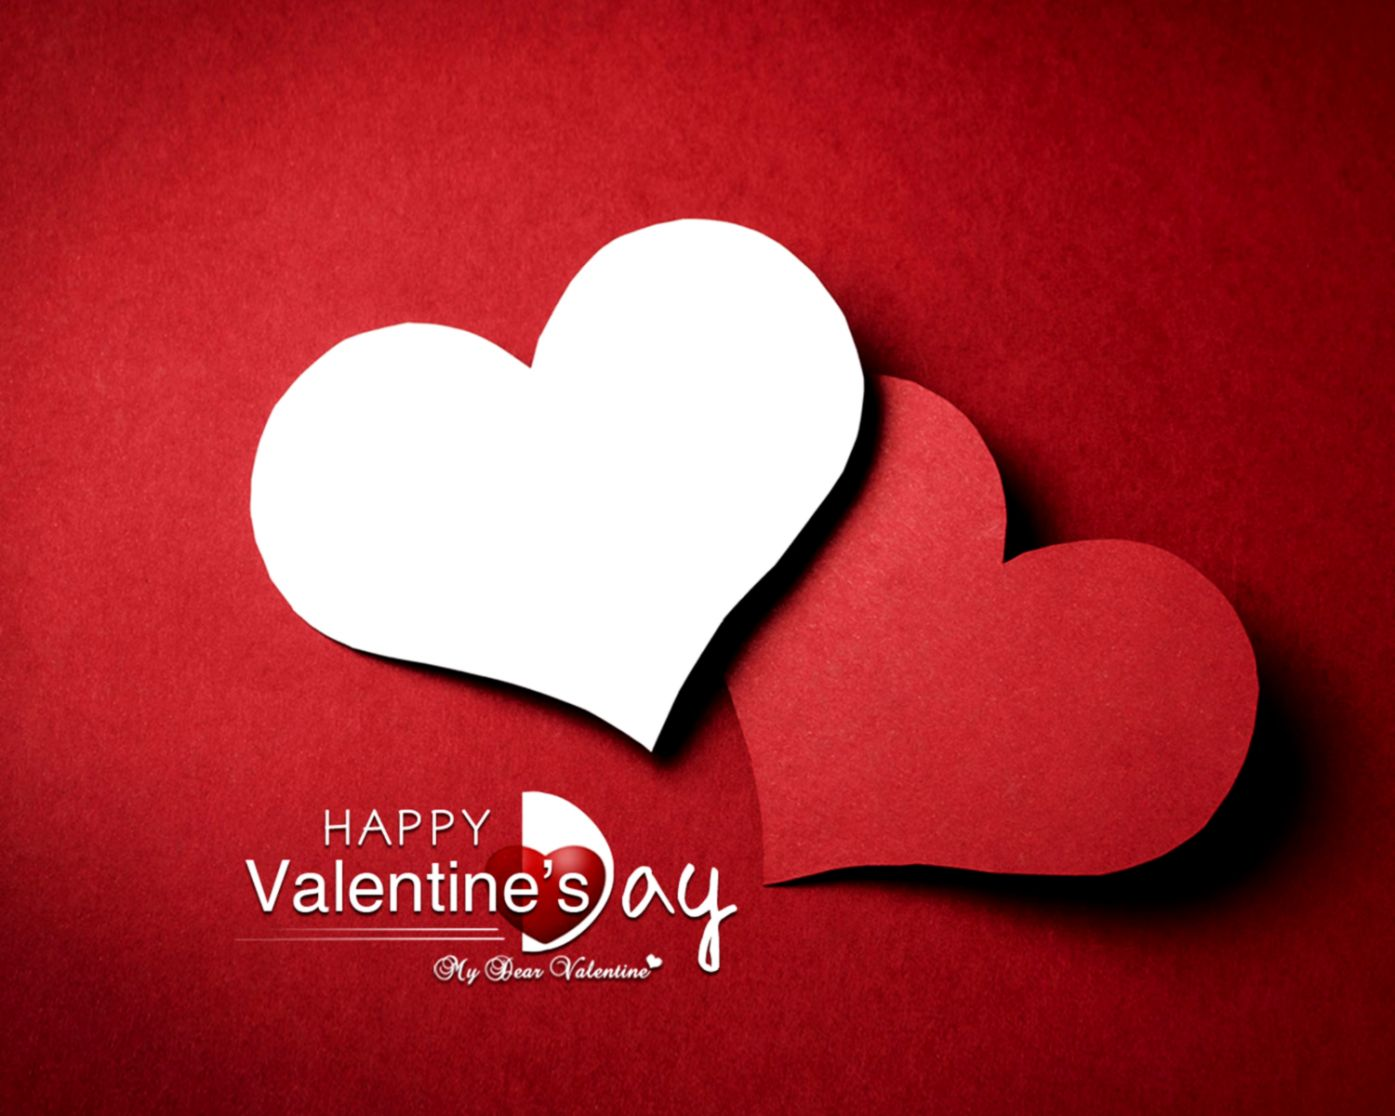 Valentine Love Heart Background Hd Wallpaper Wallpapers Awards